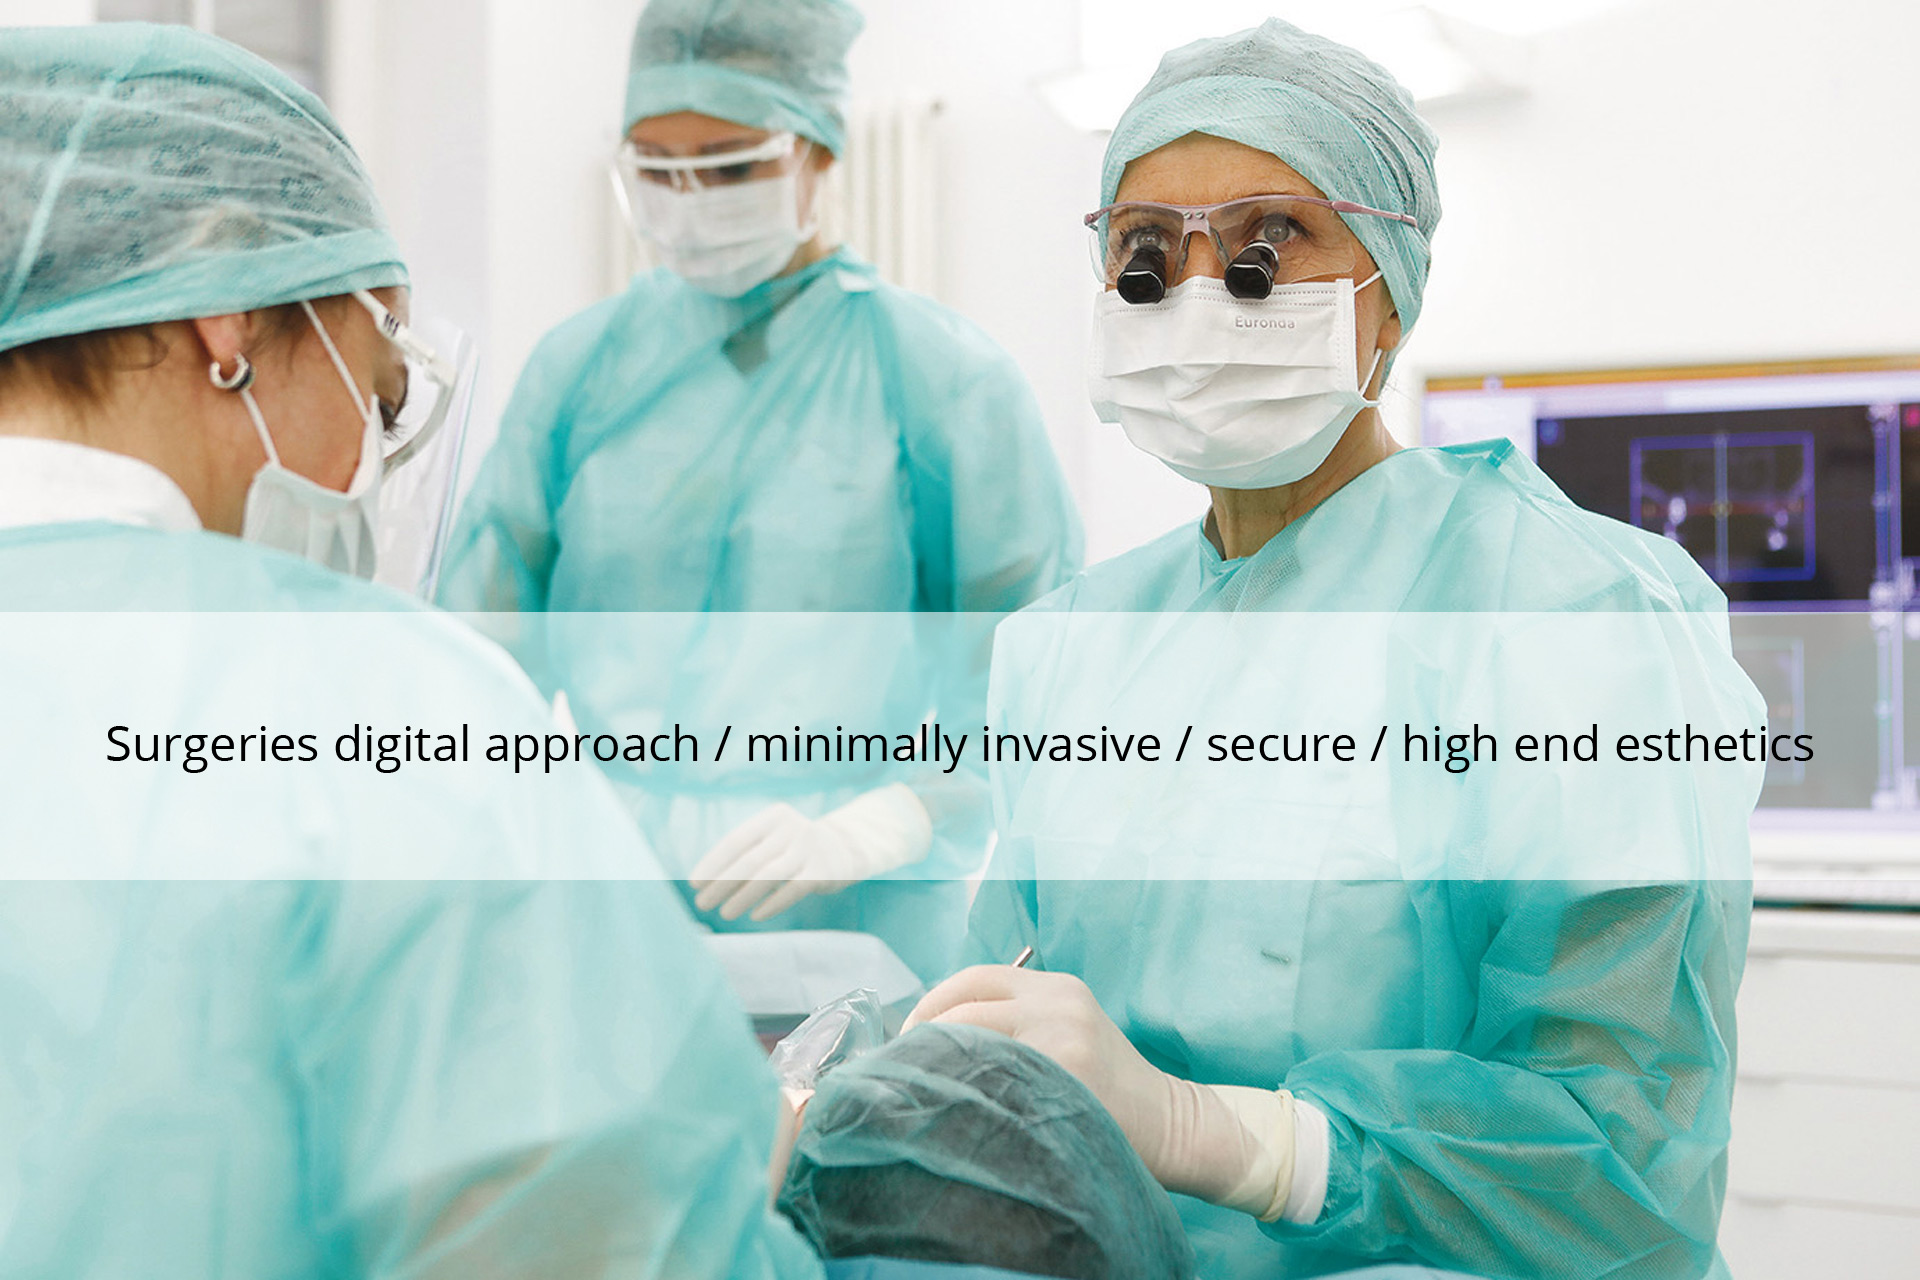 Surgeries digital approach / minimally invasive / secure / high end esthetics